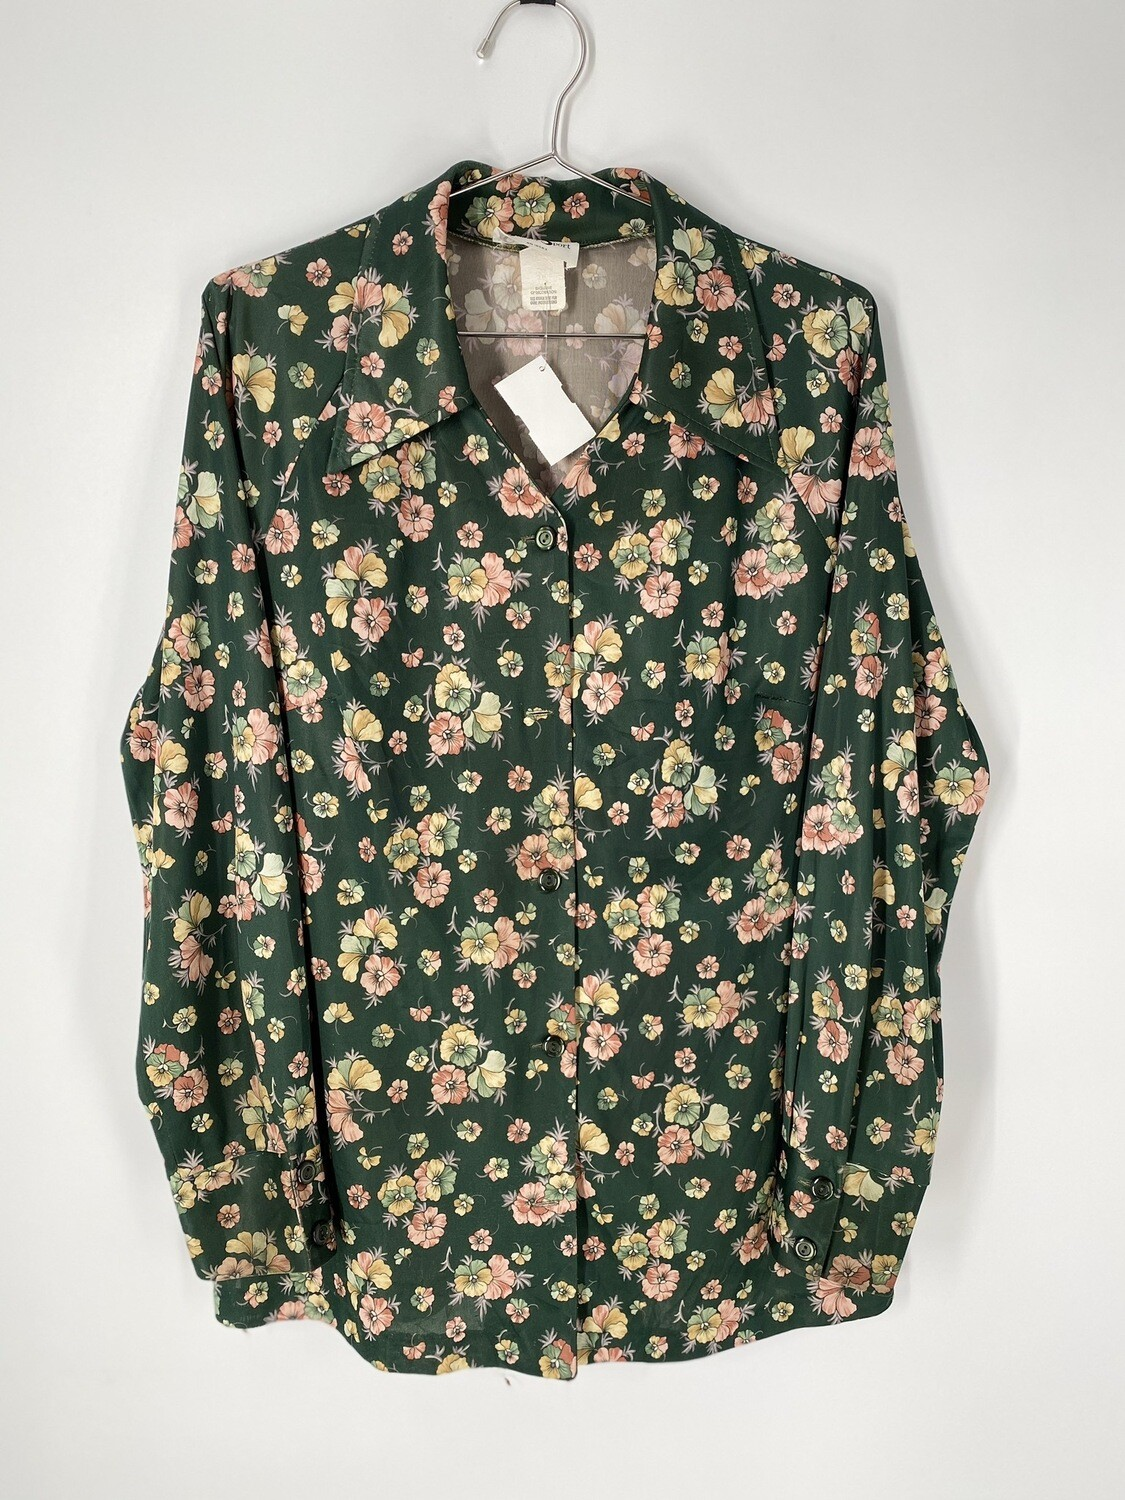 Shaker Sport Vintage Floral Button Up Size M